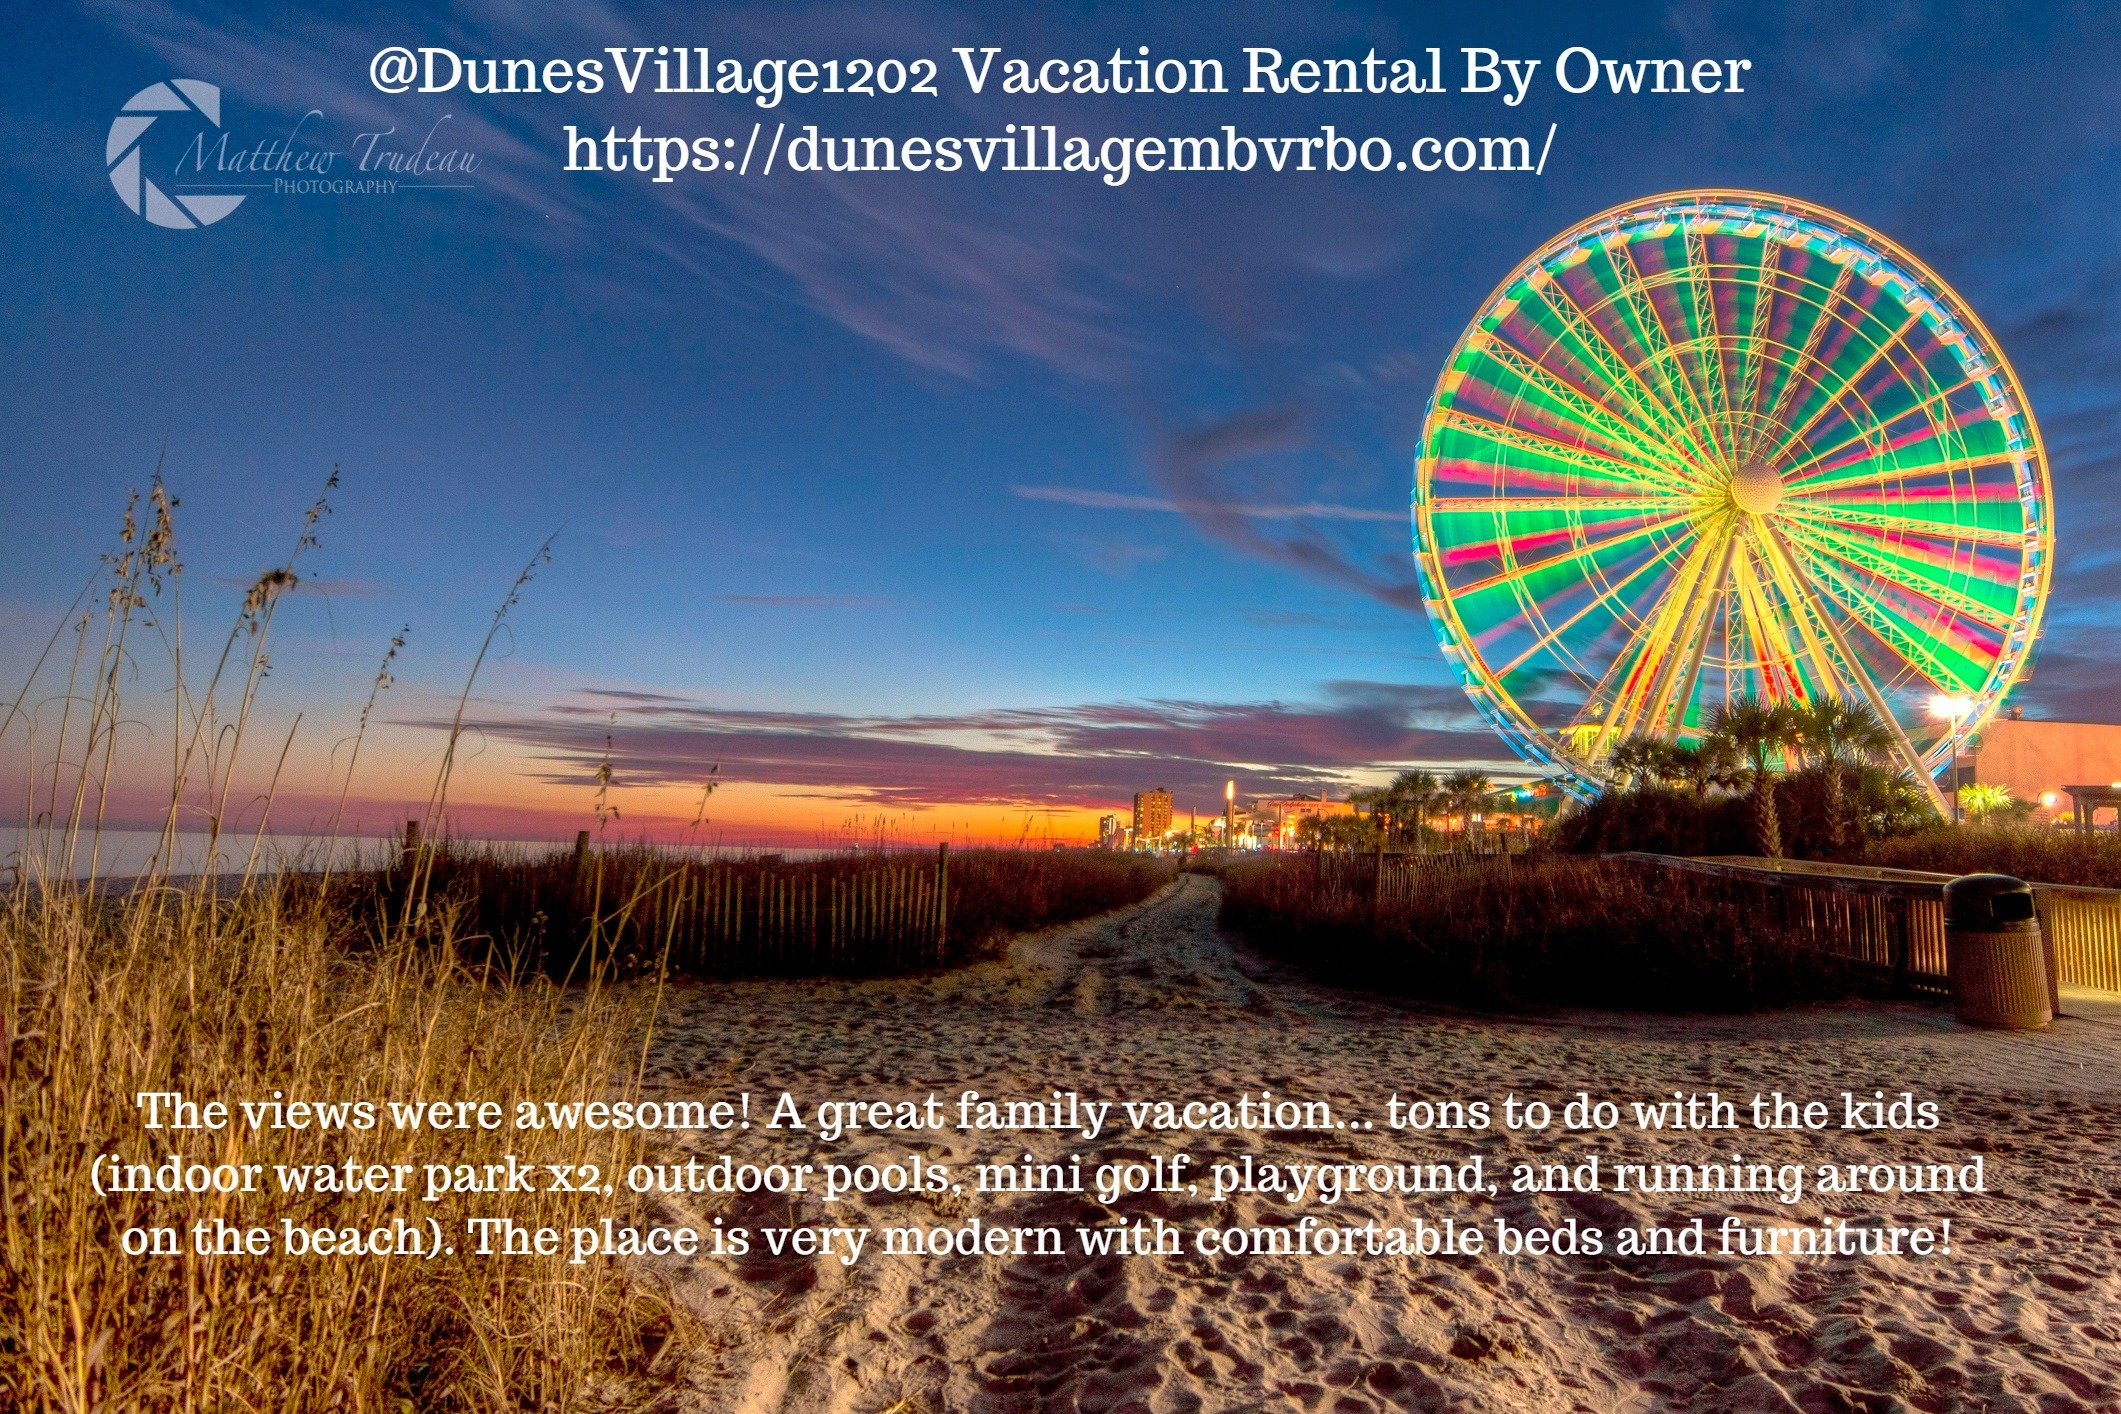 Review @DunesVillage1202